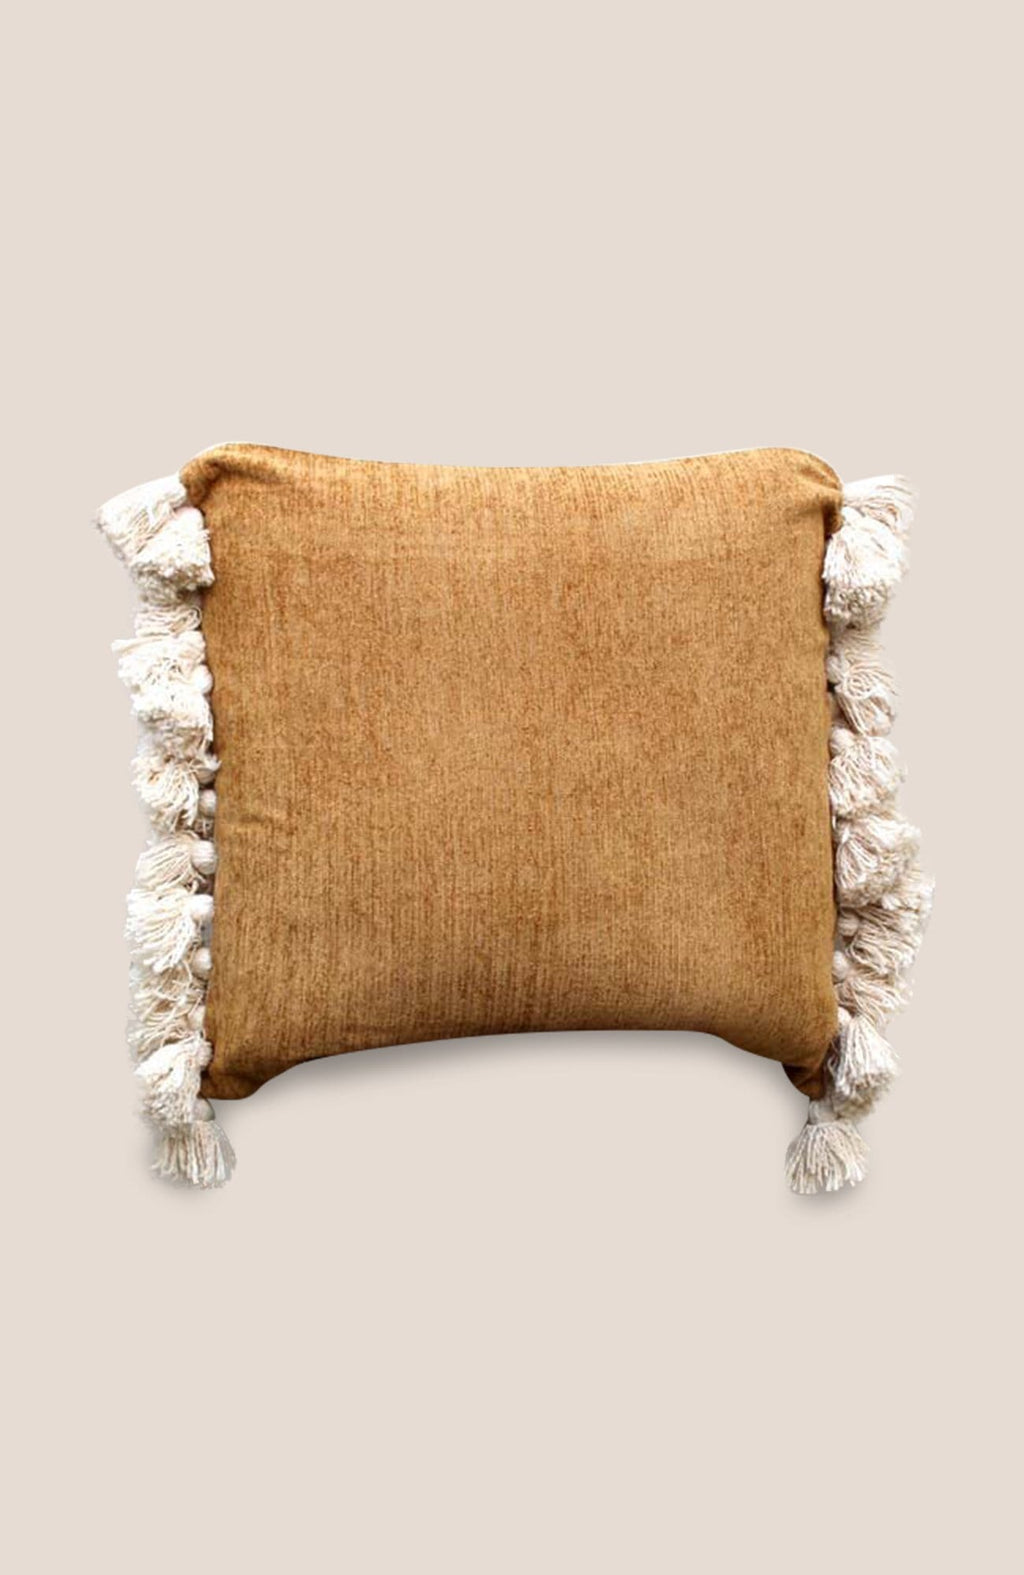 Pompon Pillow Cover Eva - Home Decor | Shop Baskets, Ceramics, Pillows, Rugs & Wall Hangs online